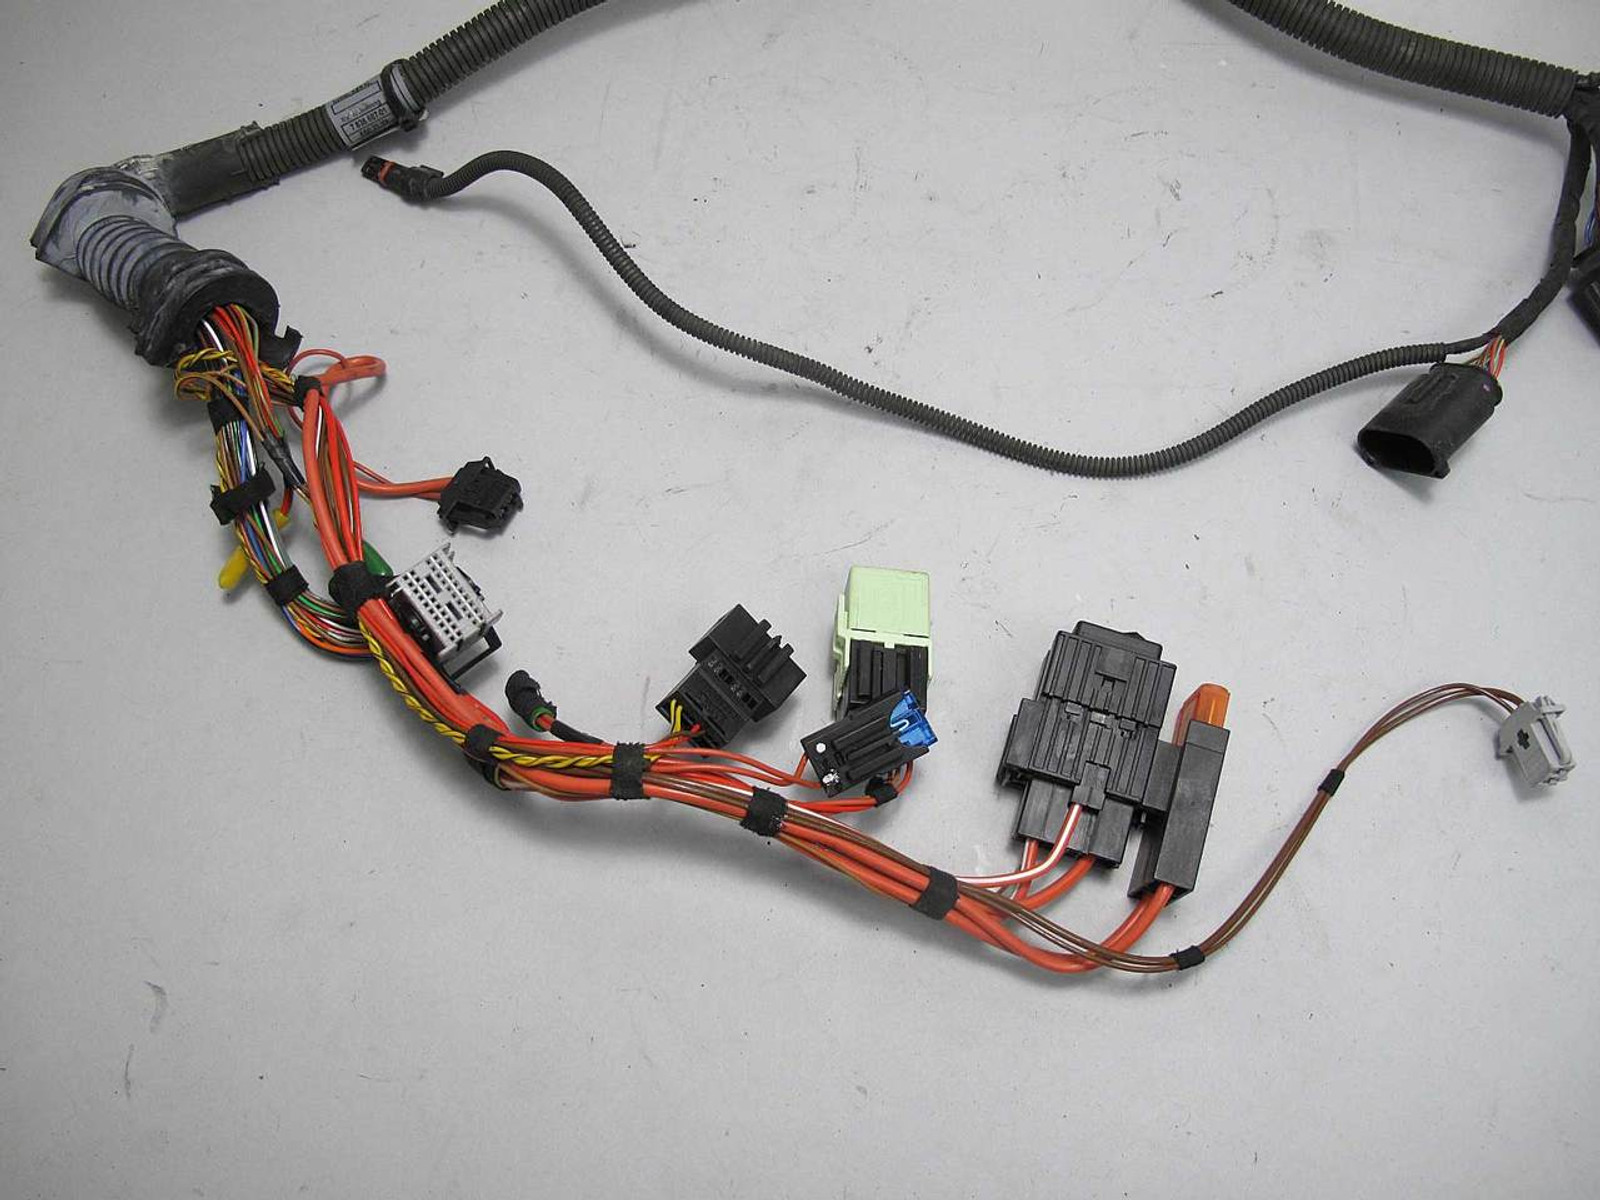 bmw e60 wiring harness just wiring diagrambmw e60 transmission wire harness 7 [ 1280 x 960 Pixel ]